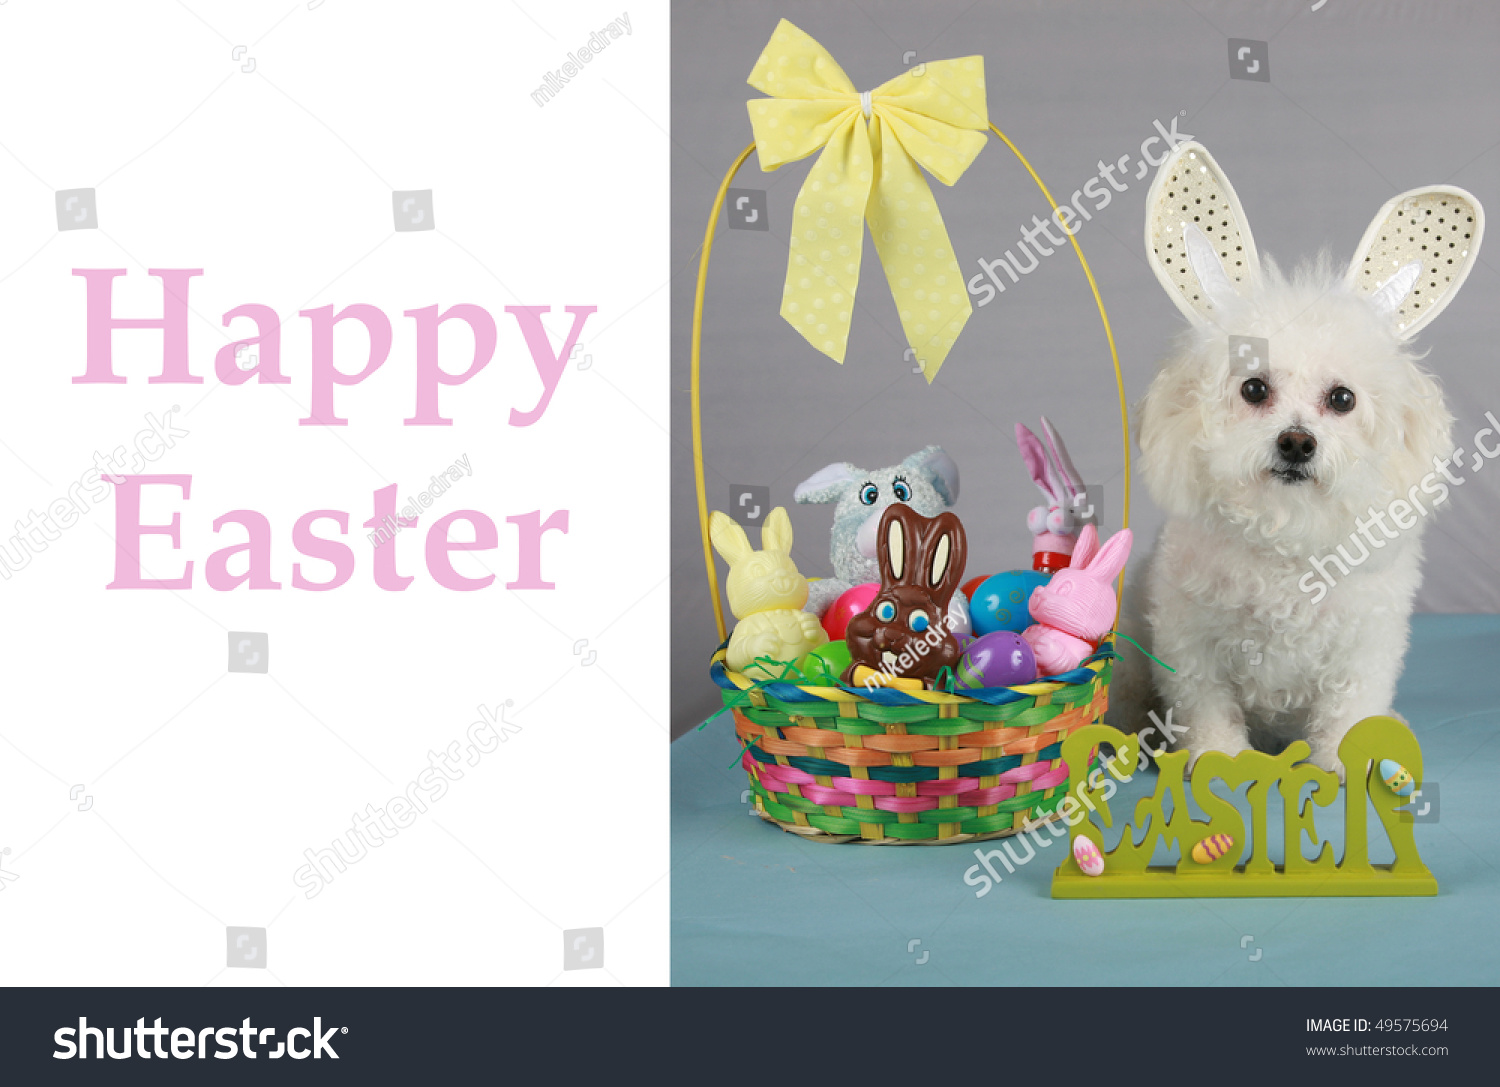 Bichon frise poses easter bunny on stock photo edit now 49575694 a bichon frise poses as the easter bunny on a greeting card concept with m4hsunfo